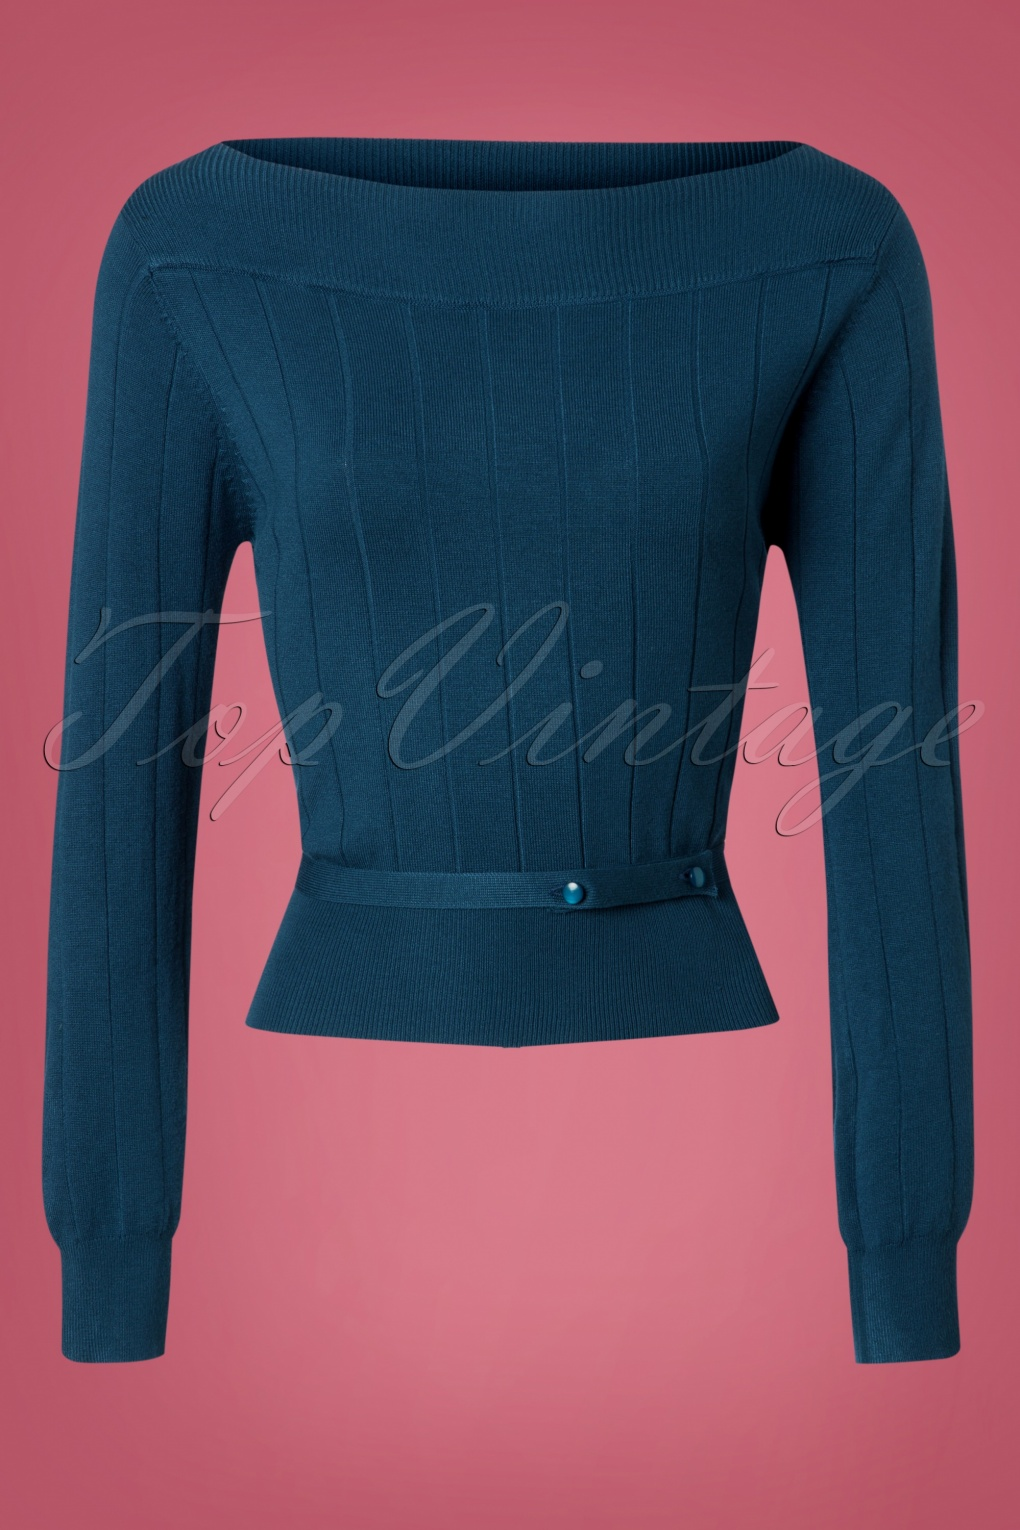 Vintage & Retro Shirts, Halter Tops, Blouses 60s Violetta Knitted Top in Blue £33.03 AT vintagedancer.com